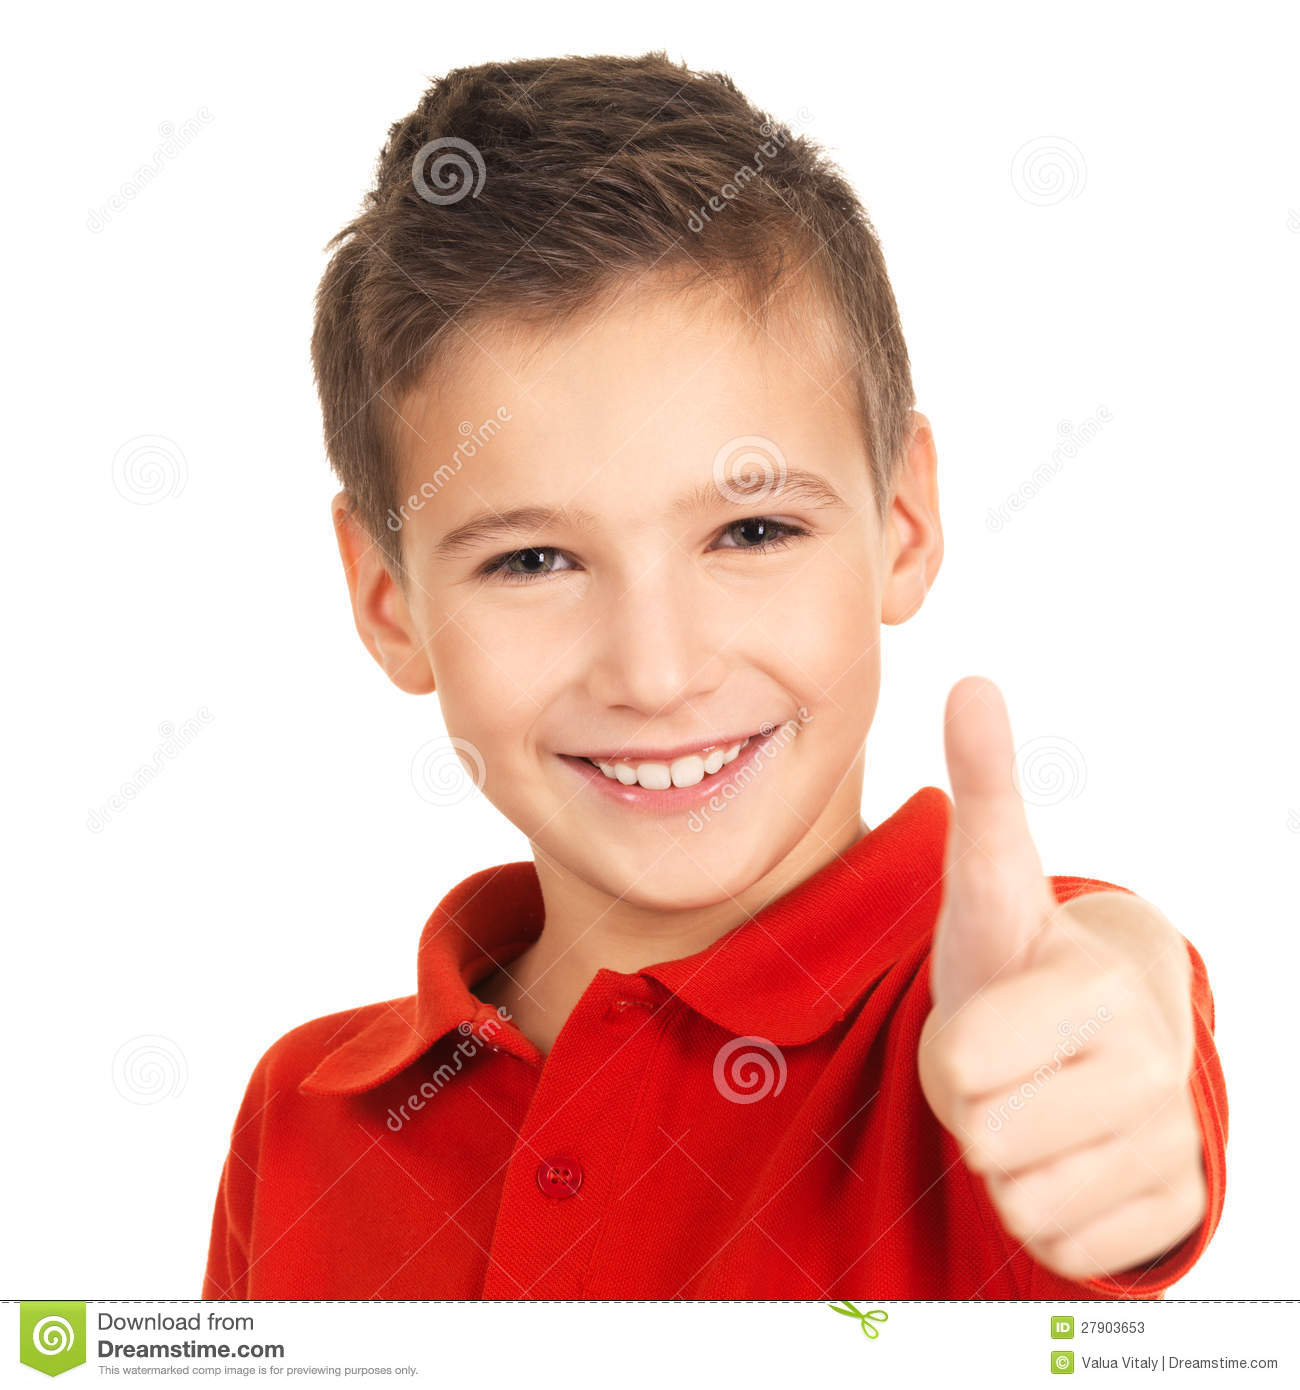 Happy Boy Showing Thumbs Up Gesture Stock Photos Image